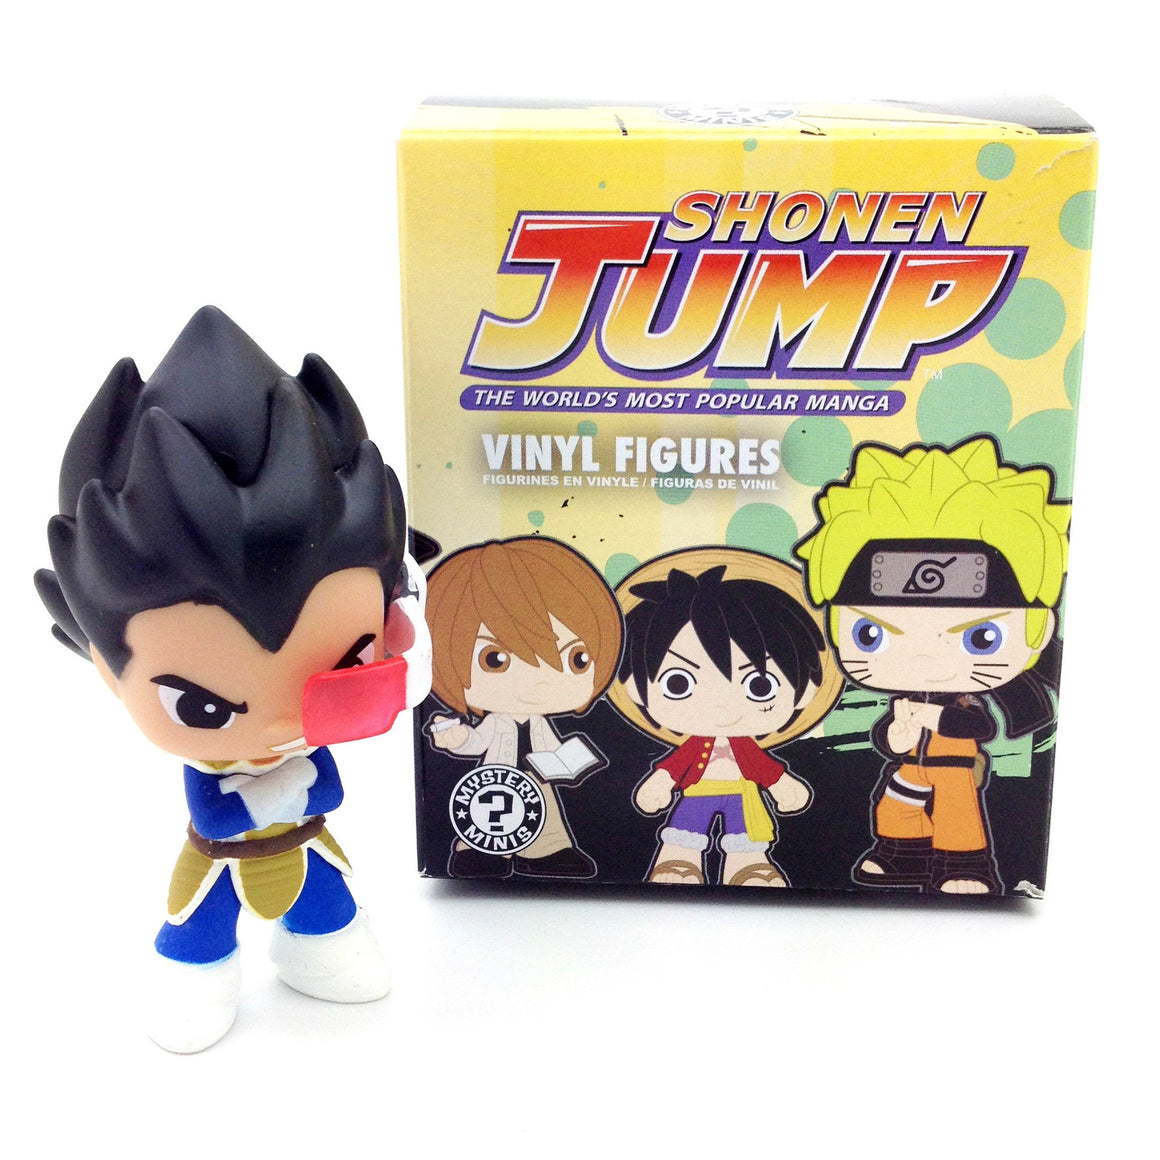 Shonen Jump Best of Anime Series 2 Blind Box - Vegeta - Mindzai  - 1